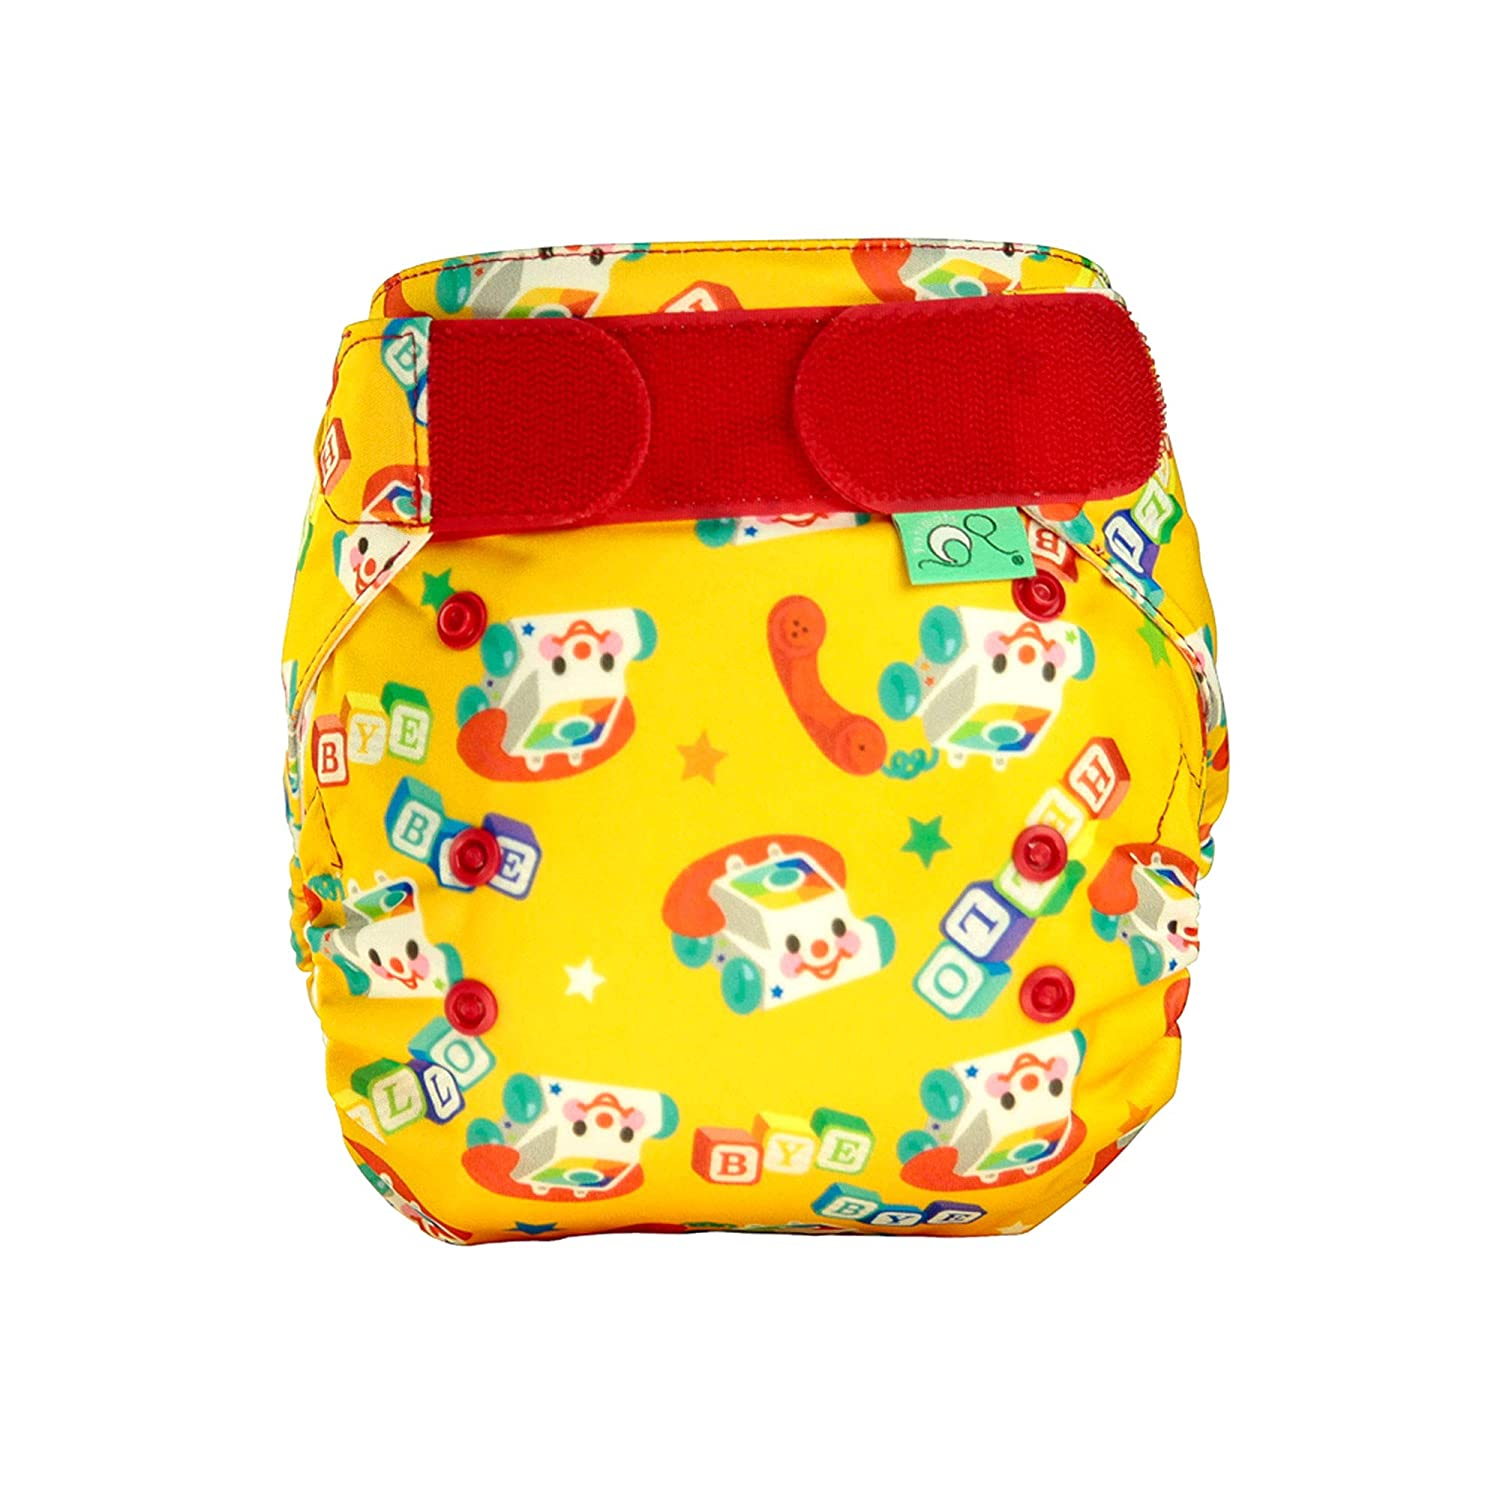 TotsBots EasyFit STAR Chatterbots Reusable Washable Nappy - One Size Tots Bots Limited